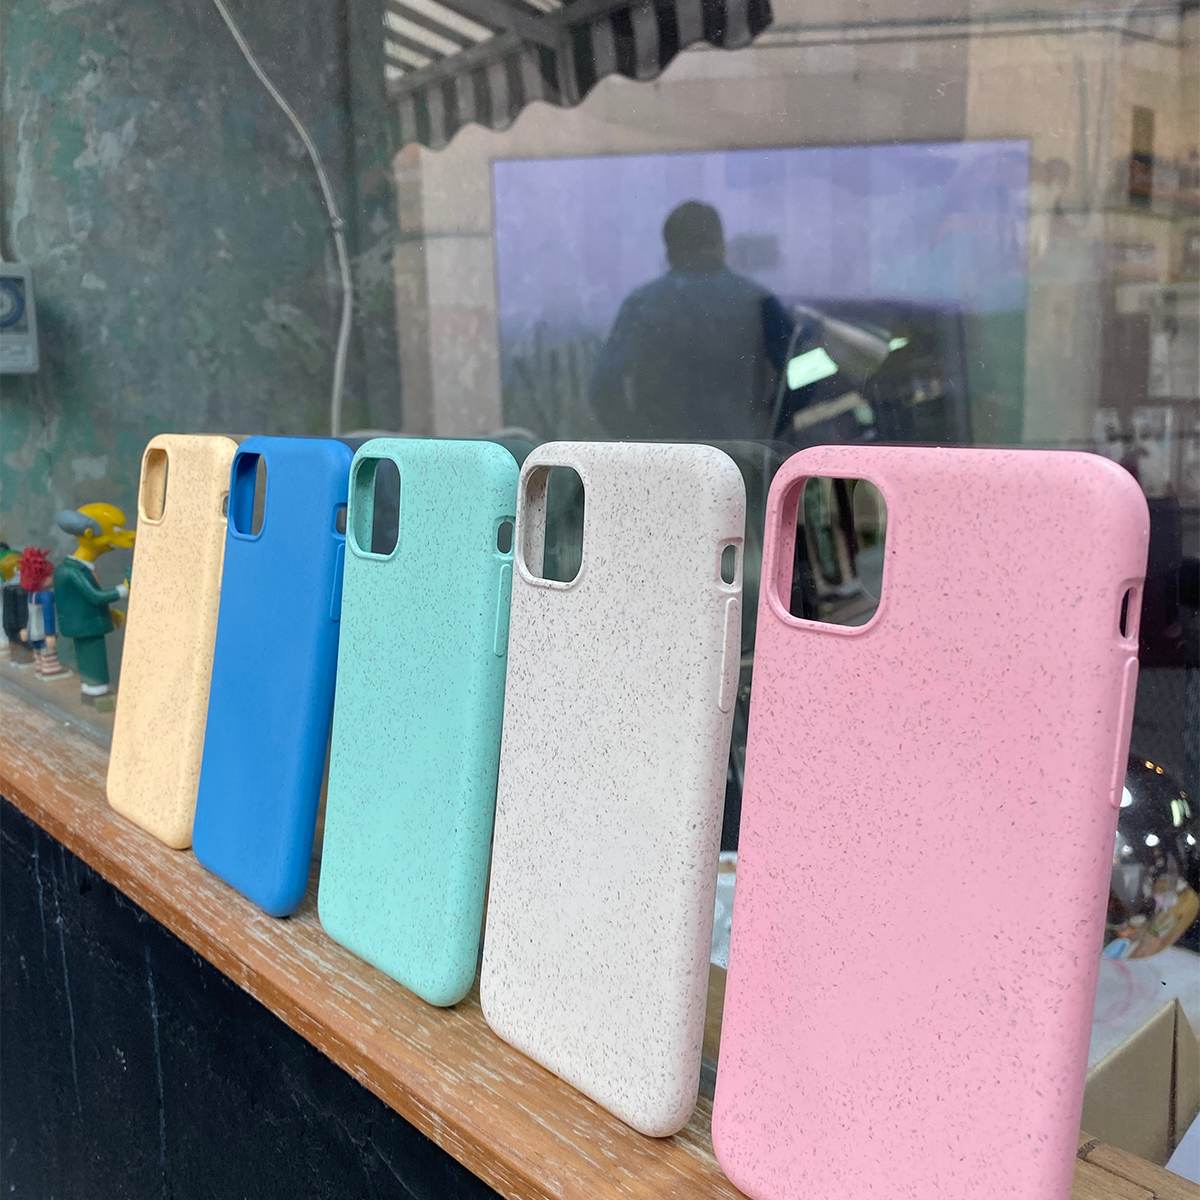 100% Biodegradable iPhone Cases